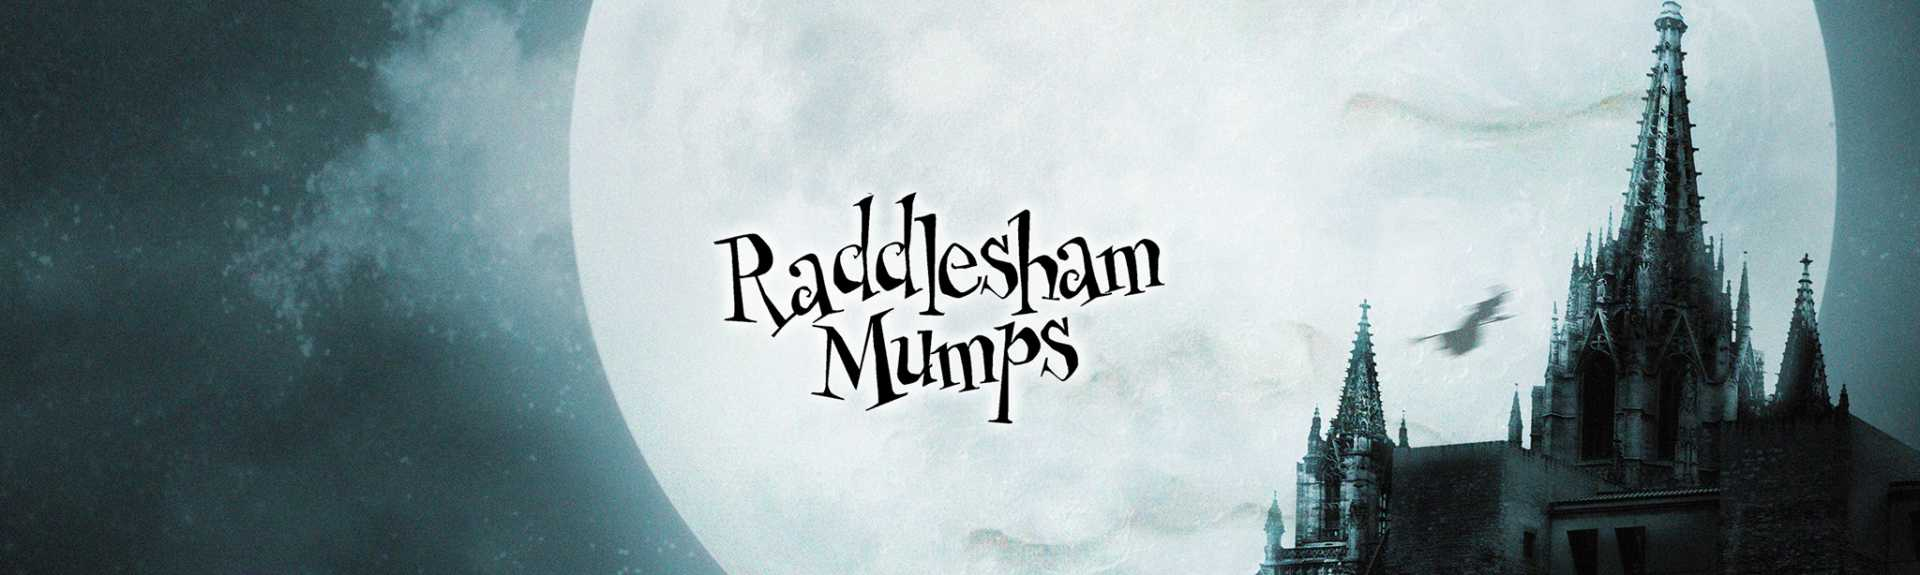 Raddlesham Mumps